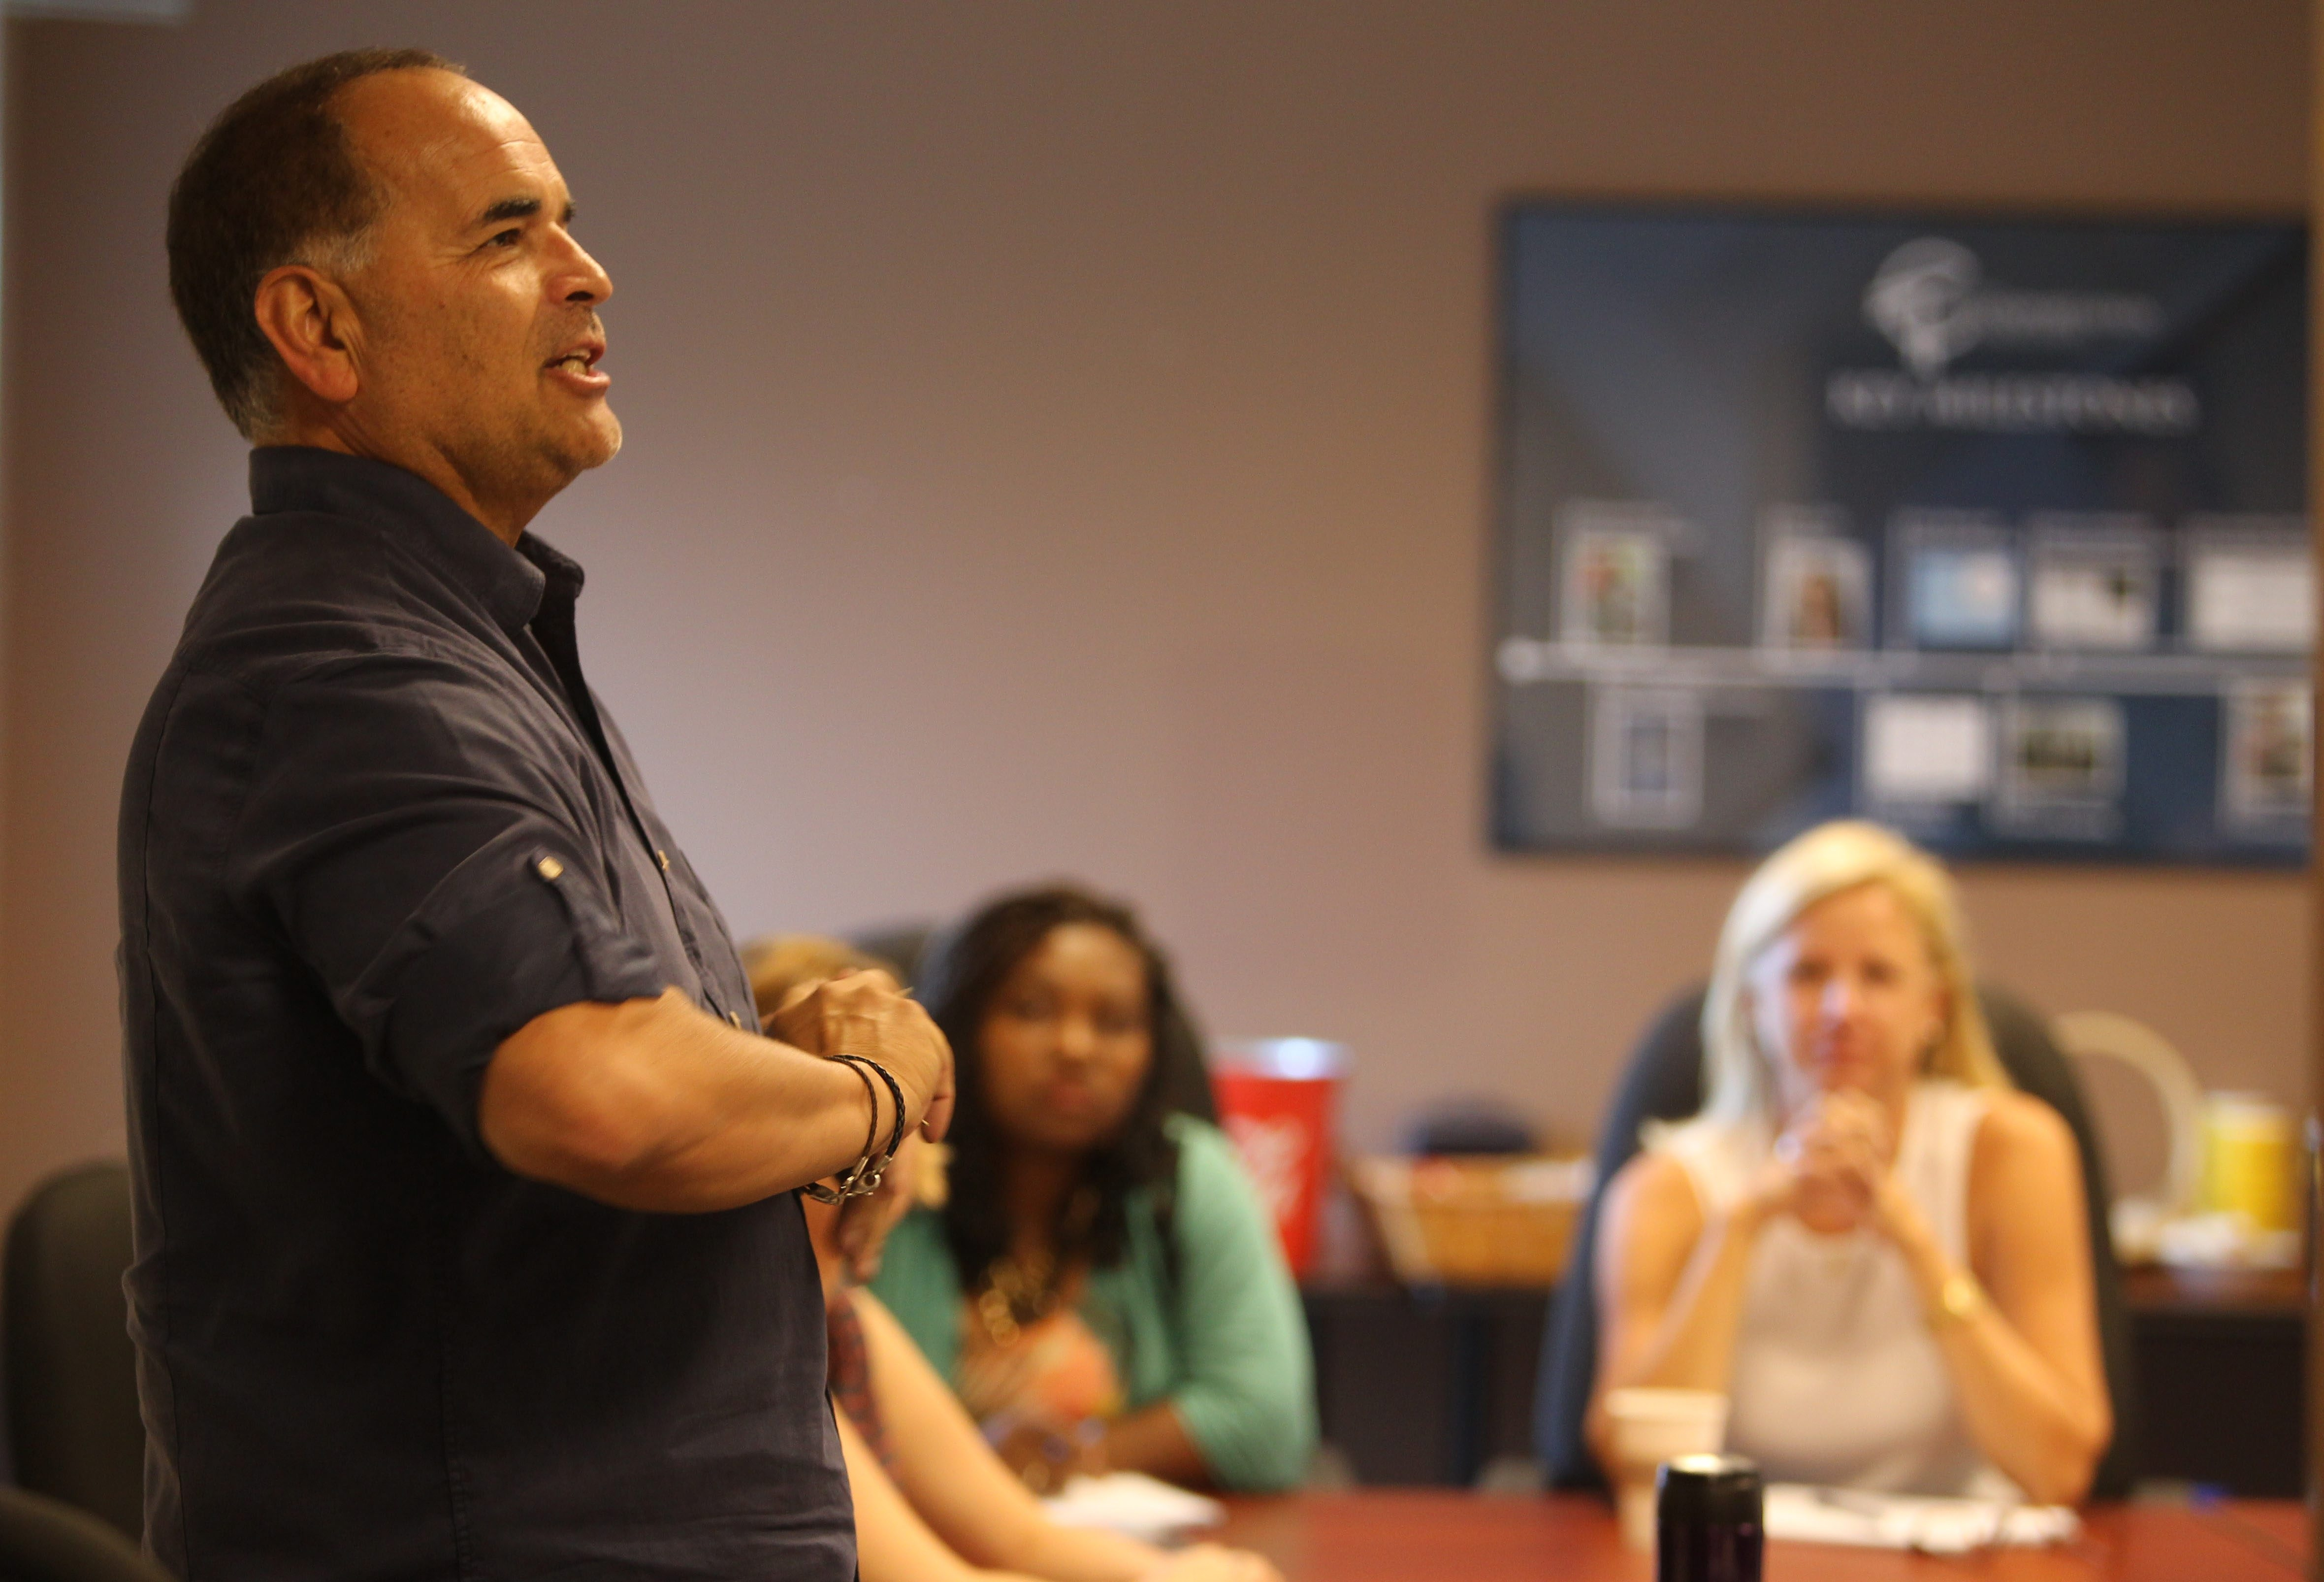 Former street tough Richard Ramos, addressing a group at Center for Transportation Excellence on East Amherst Street Tuesday, will be keynote speaker at a free, public community conversation at 6 p.m. Thursday in Bennett High School.